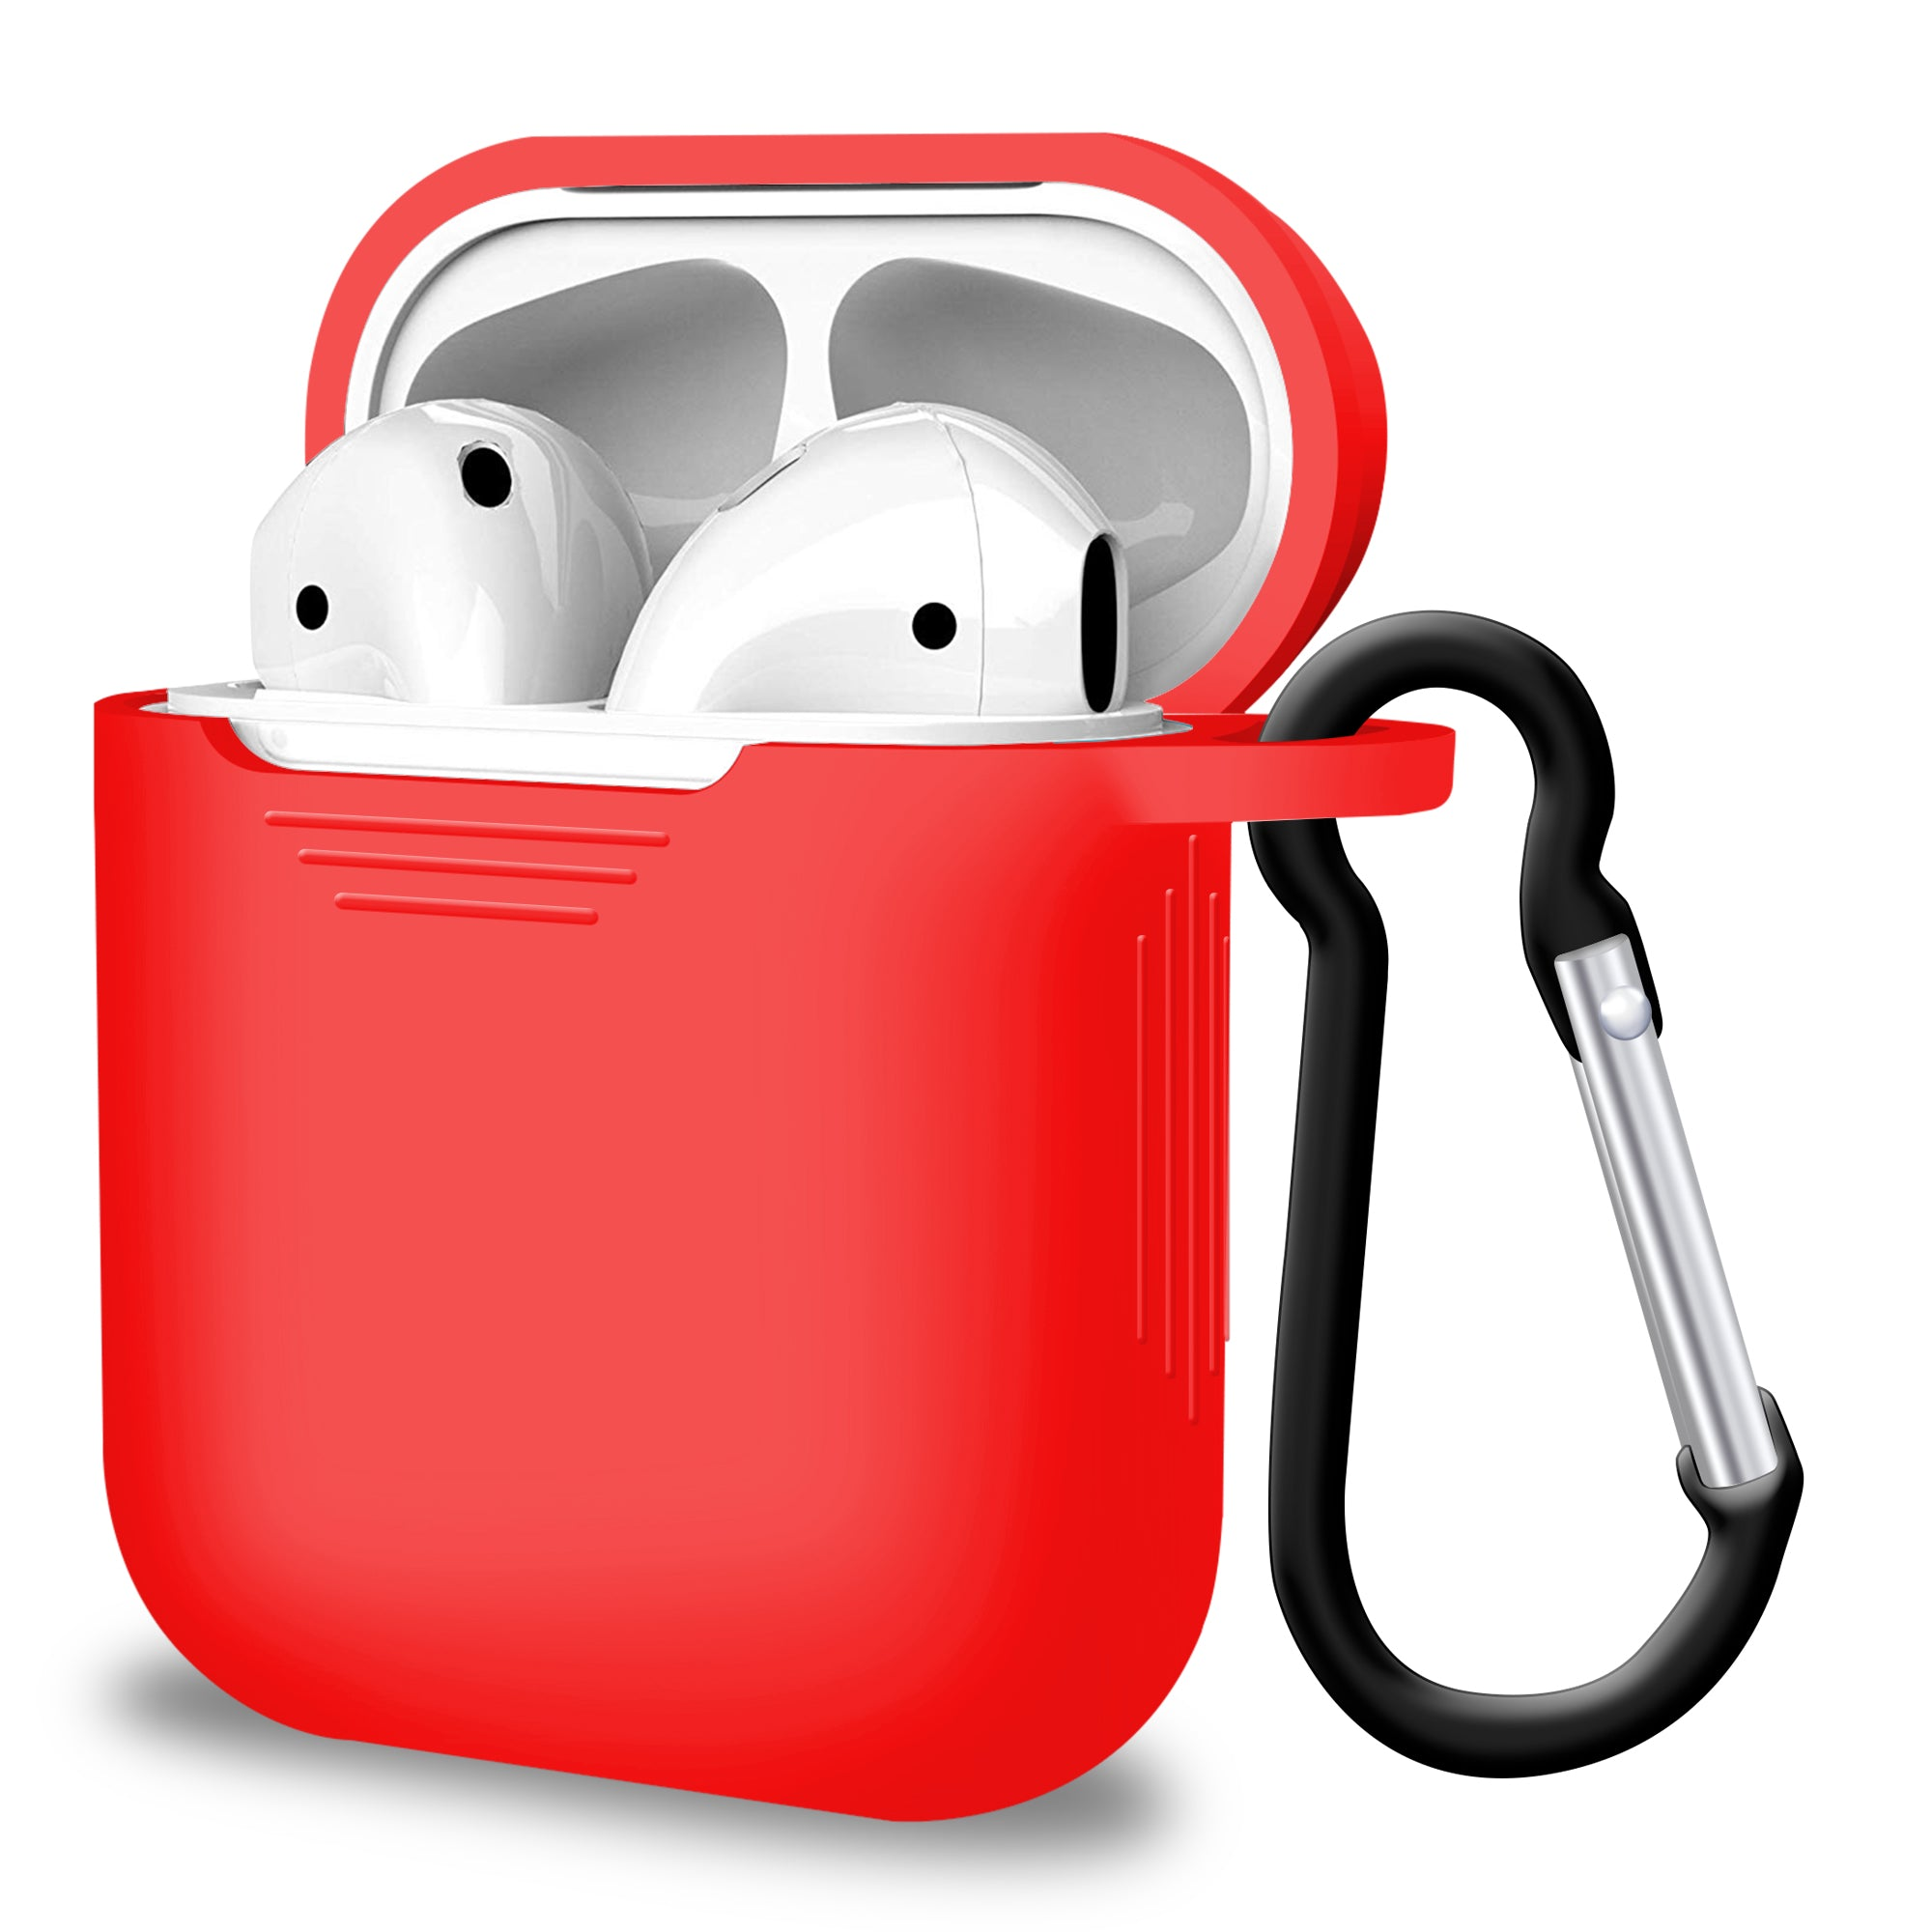 2 in 1 Apple Airpods Silicone Case Earphones Charging Skin Cover - Red, Audio Accessories by TradeNRG